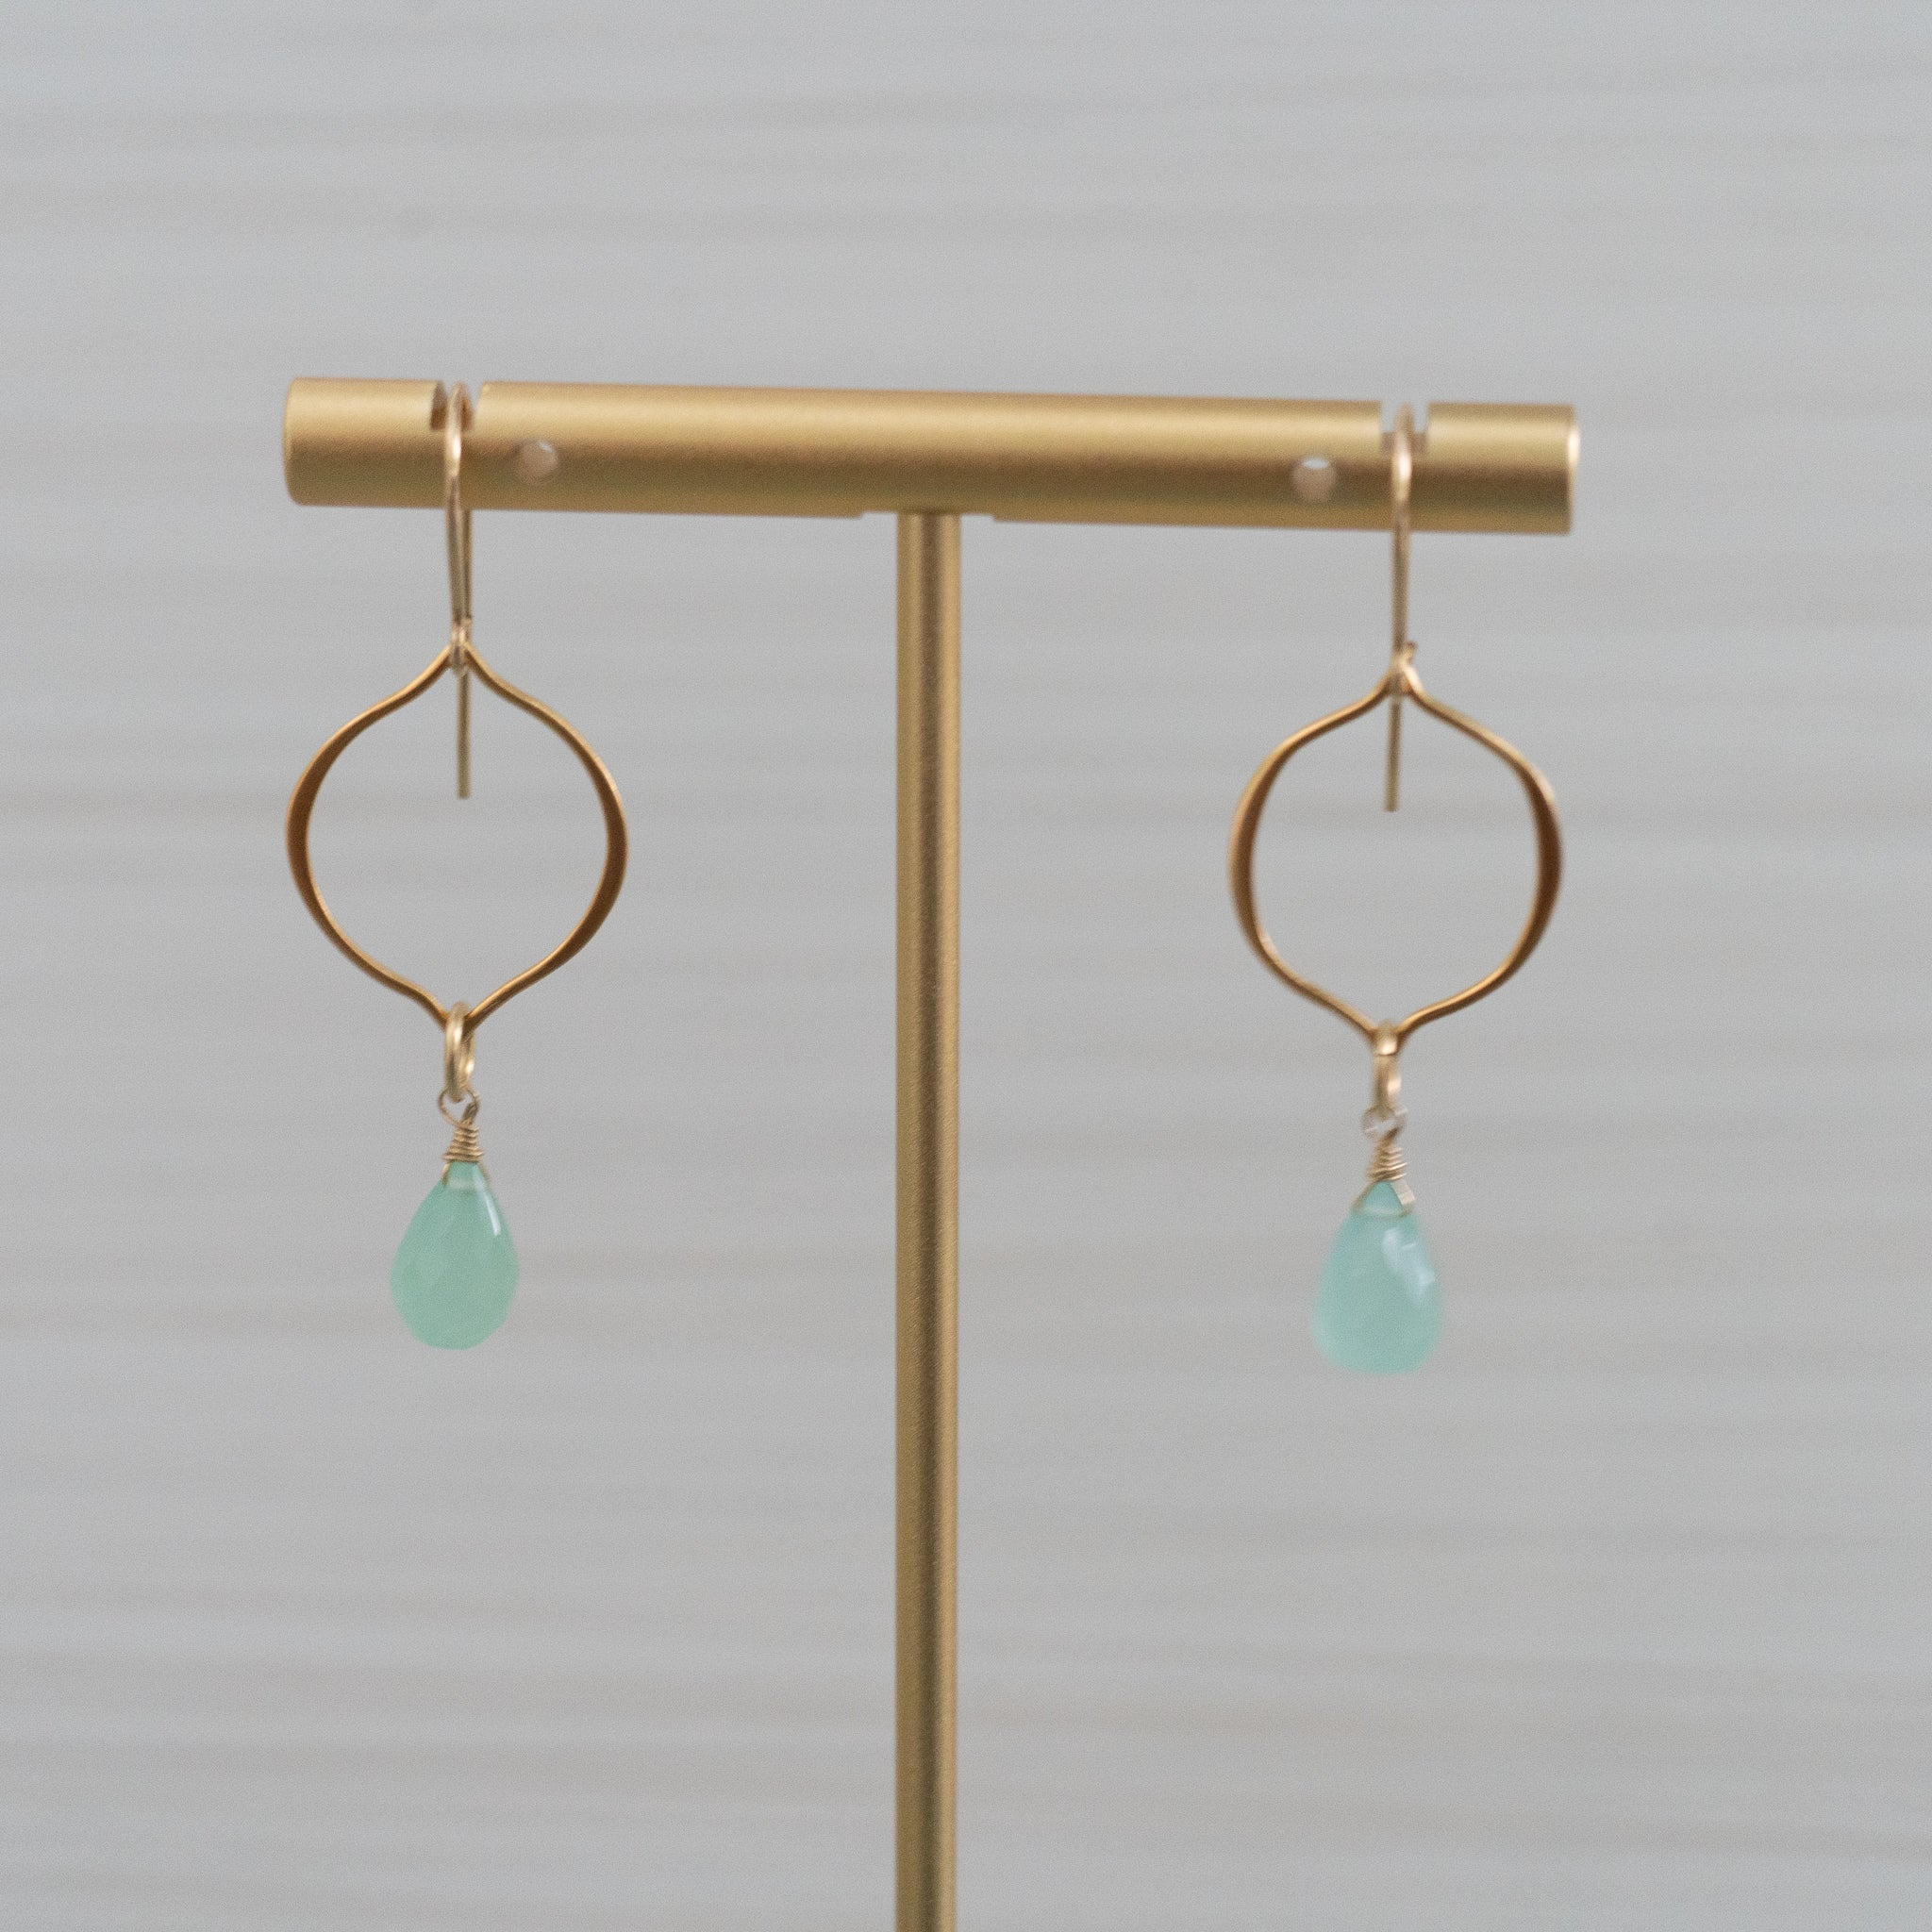 blue gemstones arabesque shape gold earrings  Edit alt text